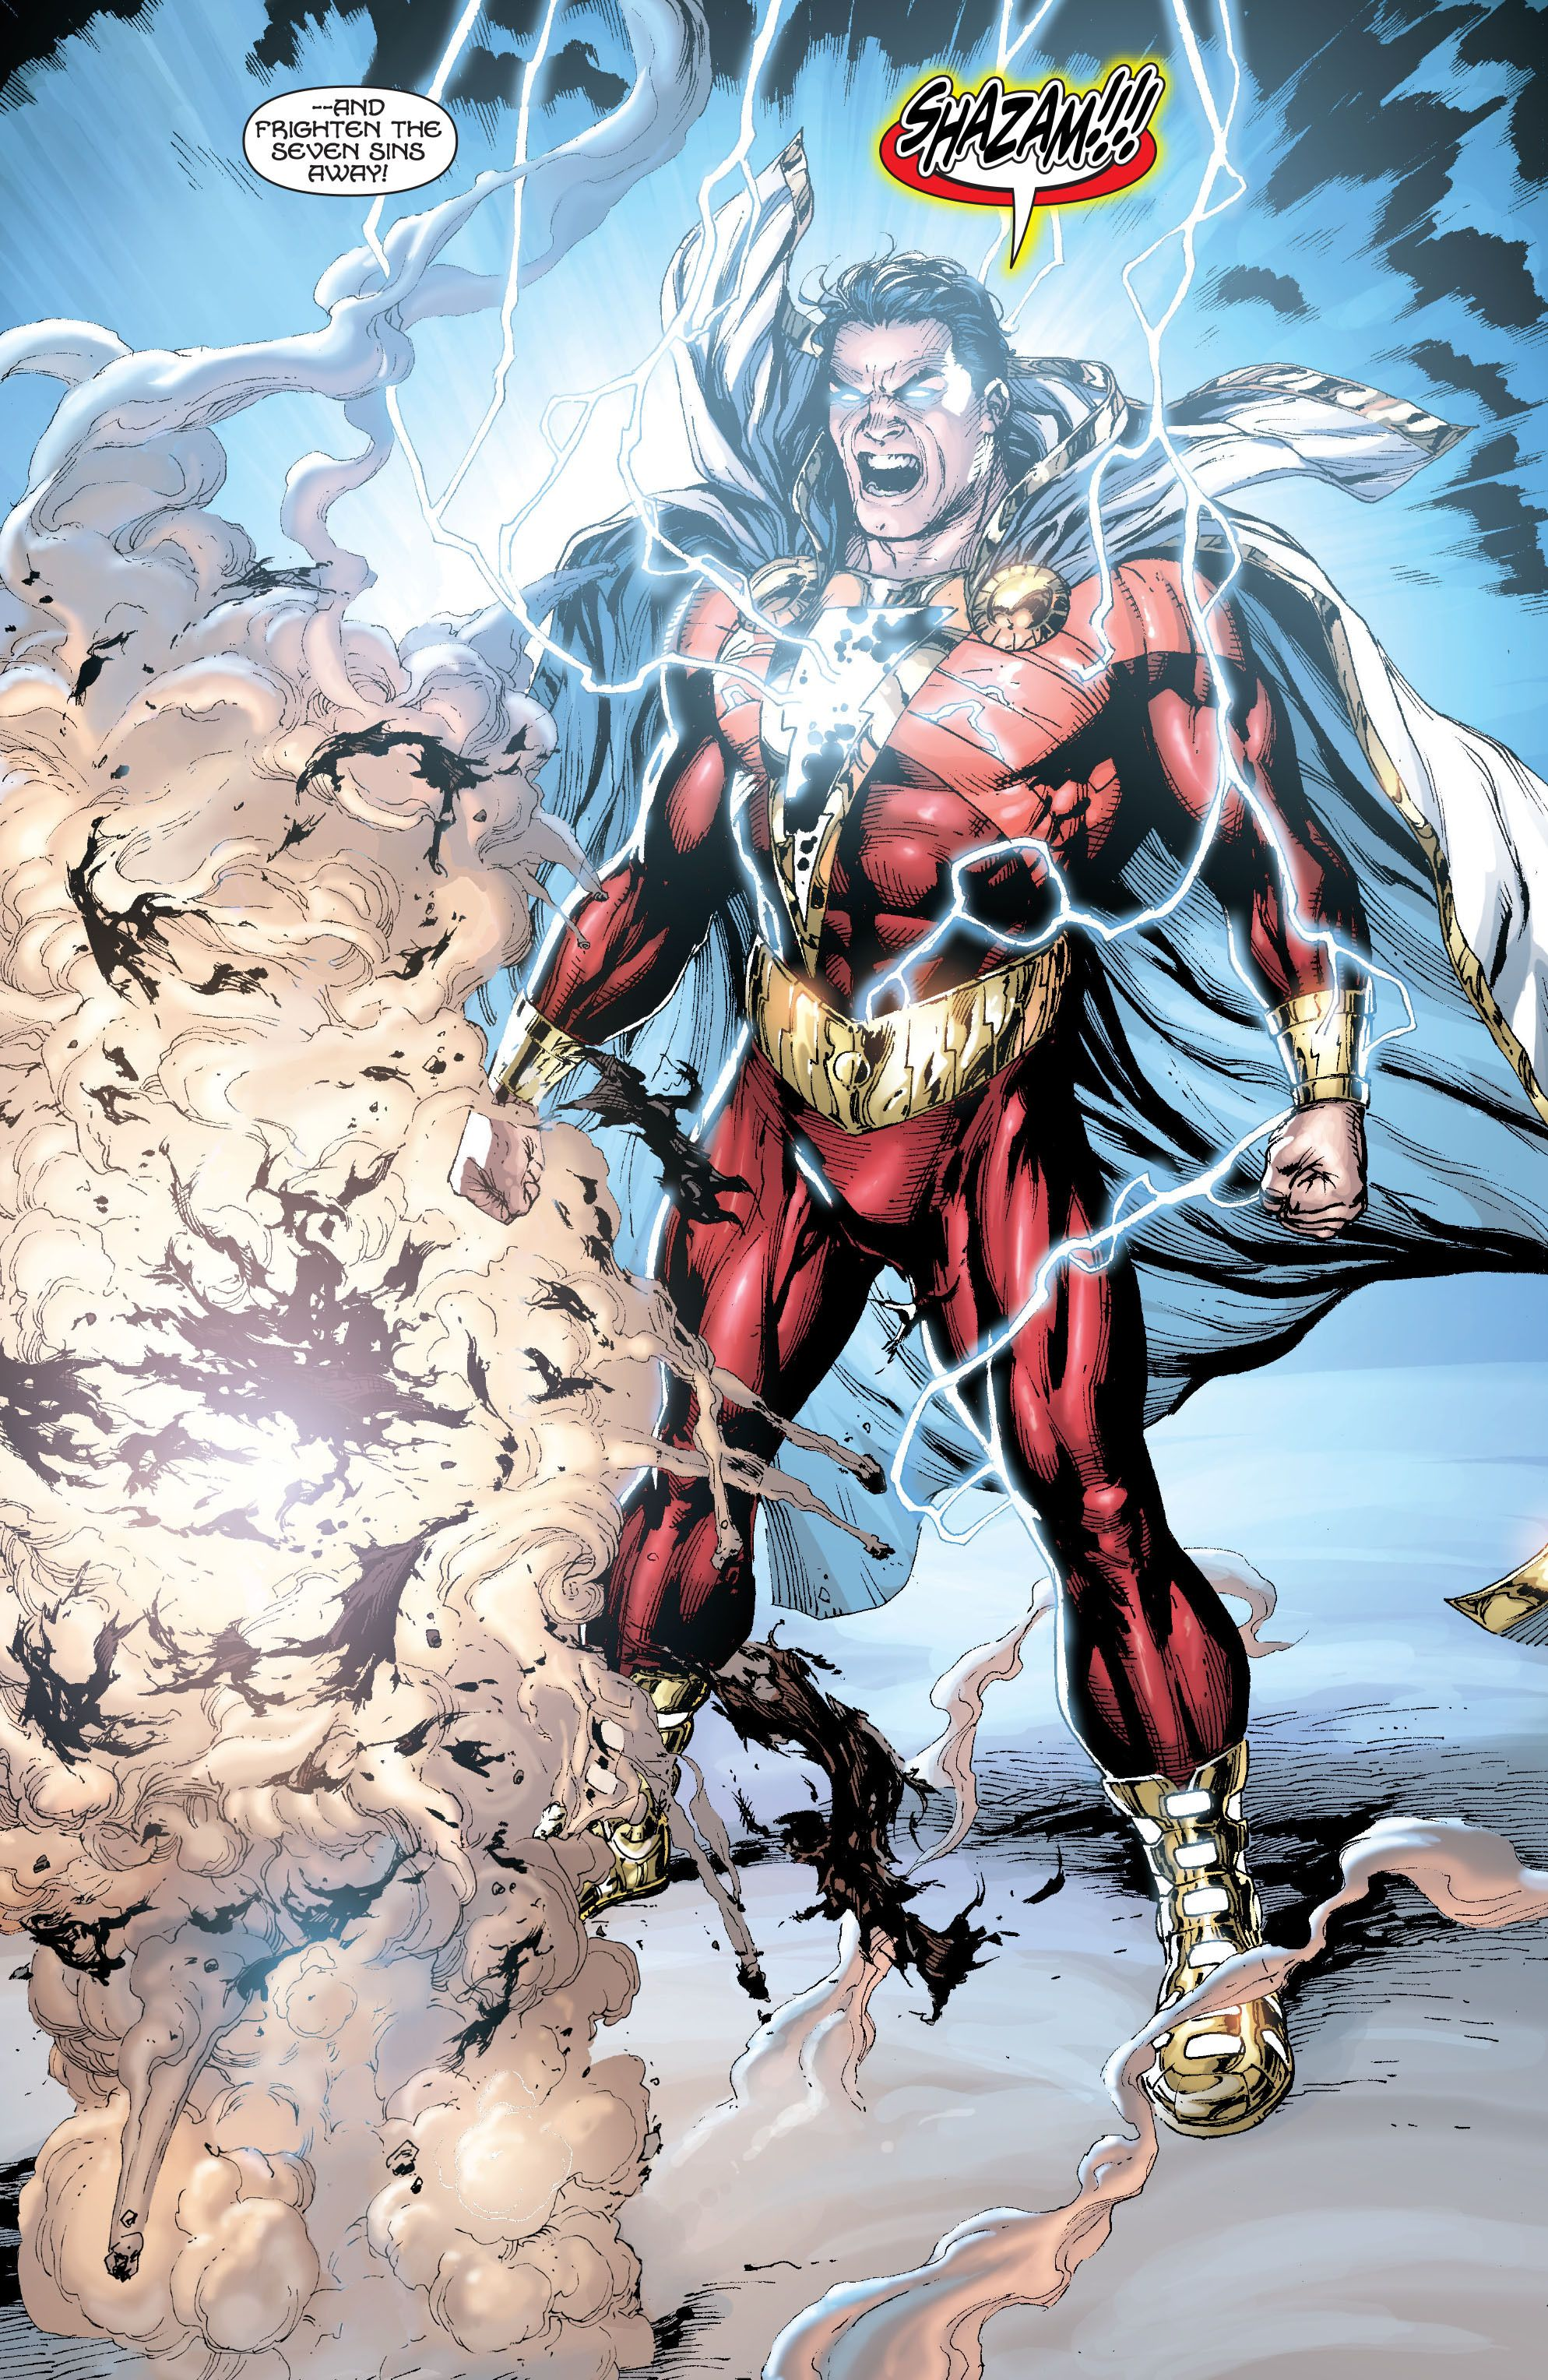 SHAZAM the best | Shazam | Pinterest | Comic, Captain marvel and Marvel